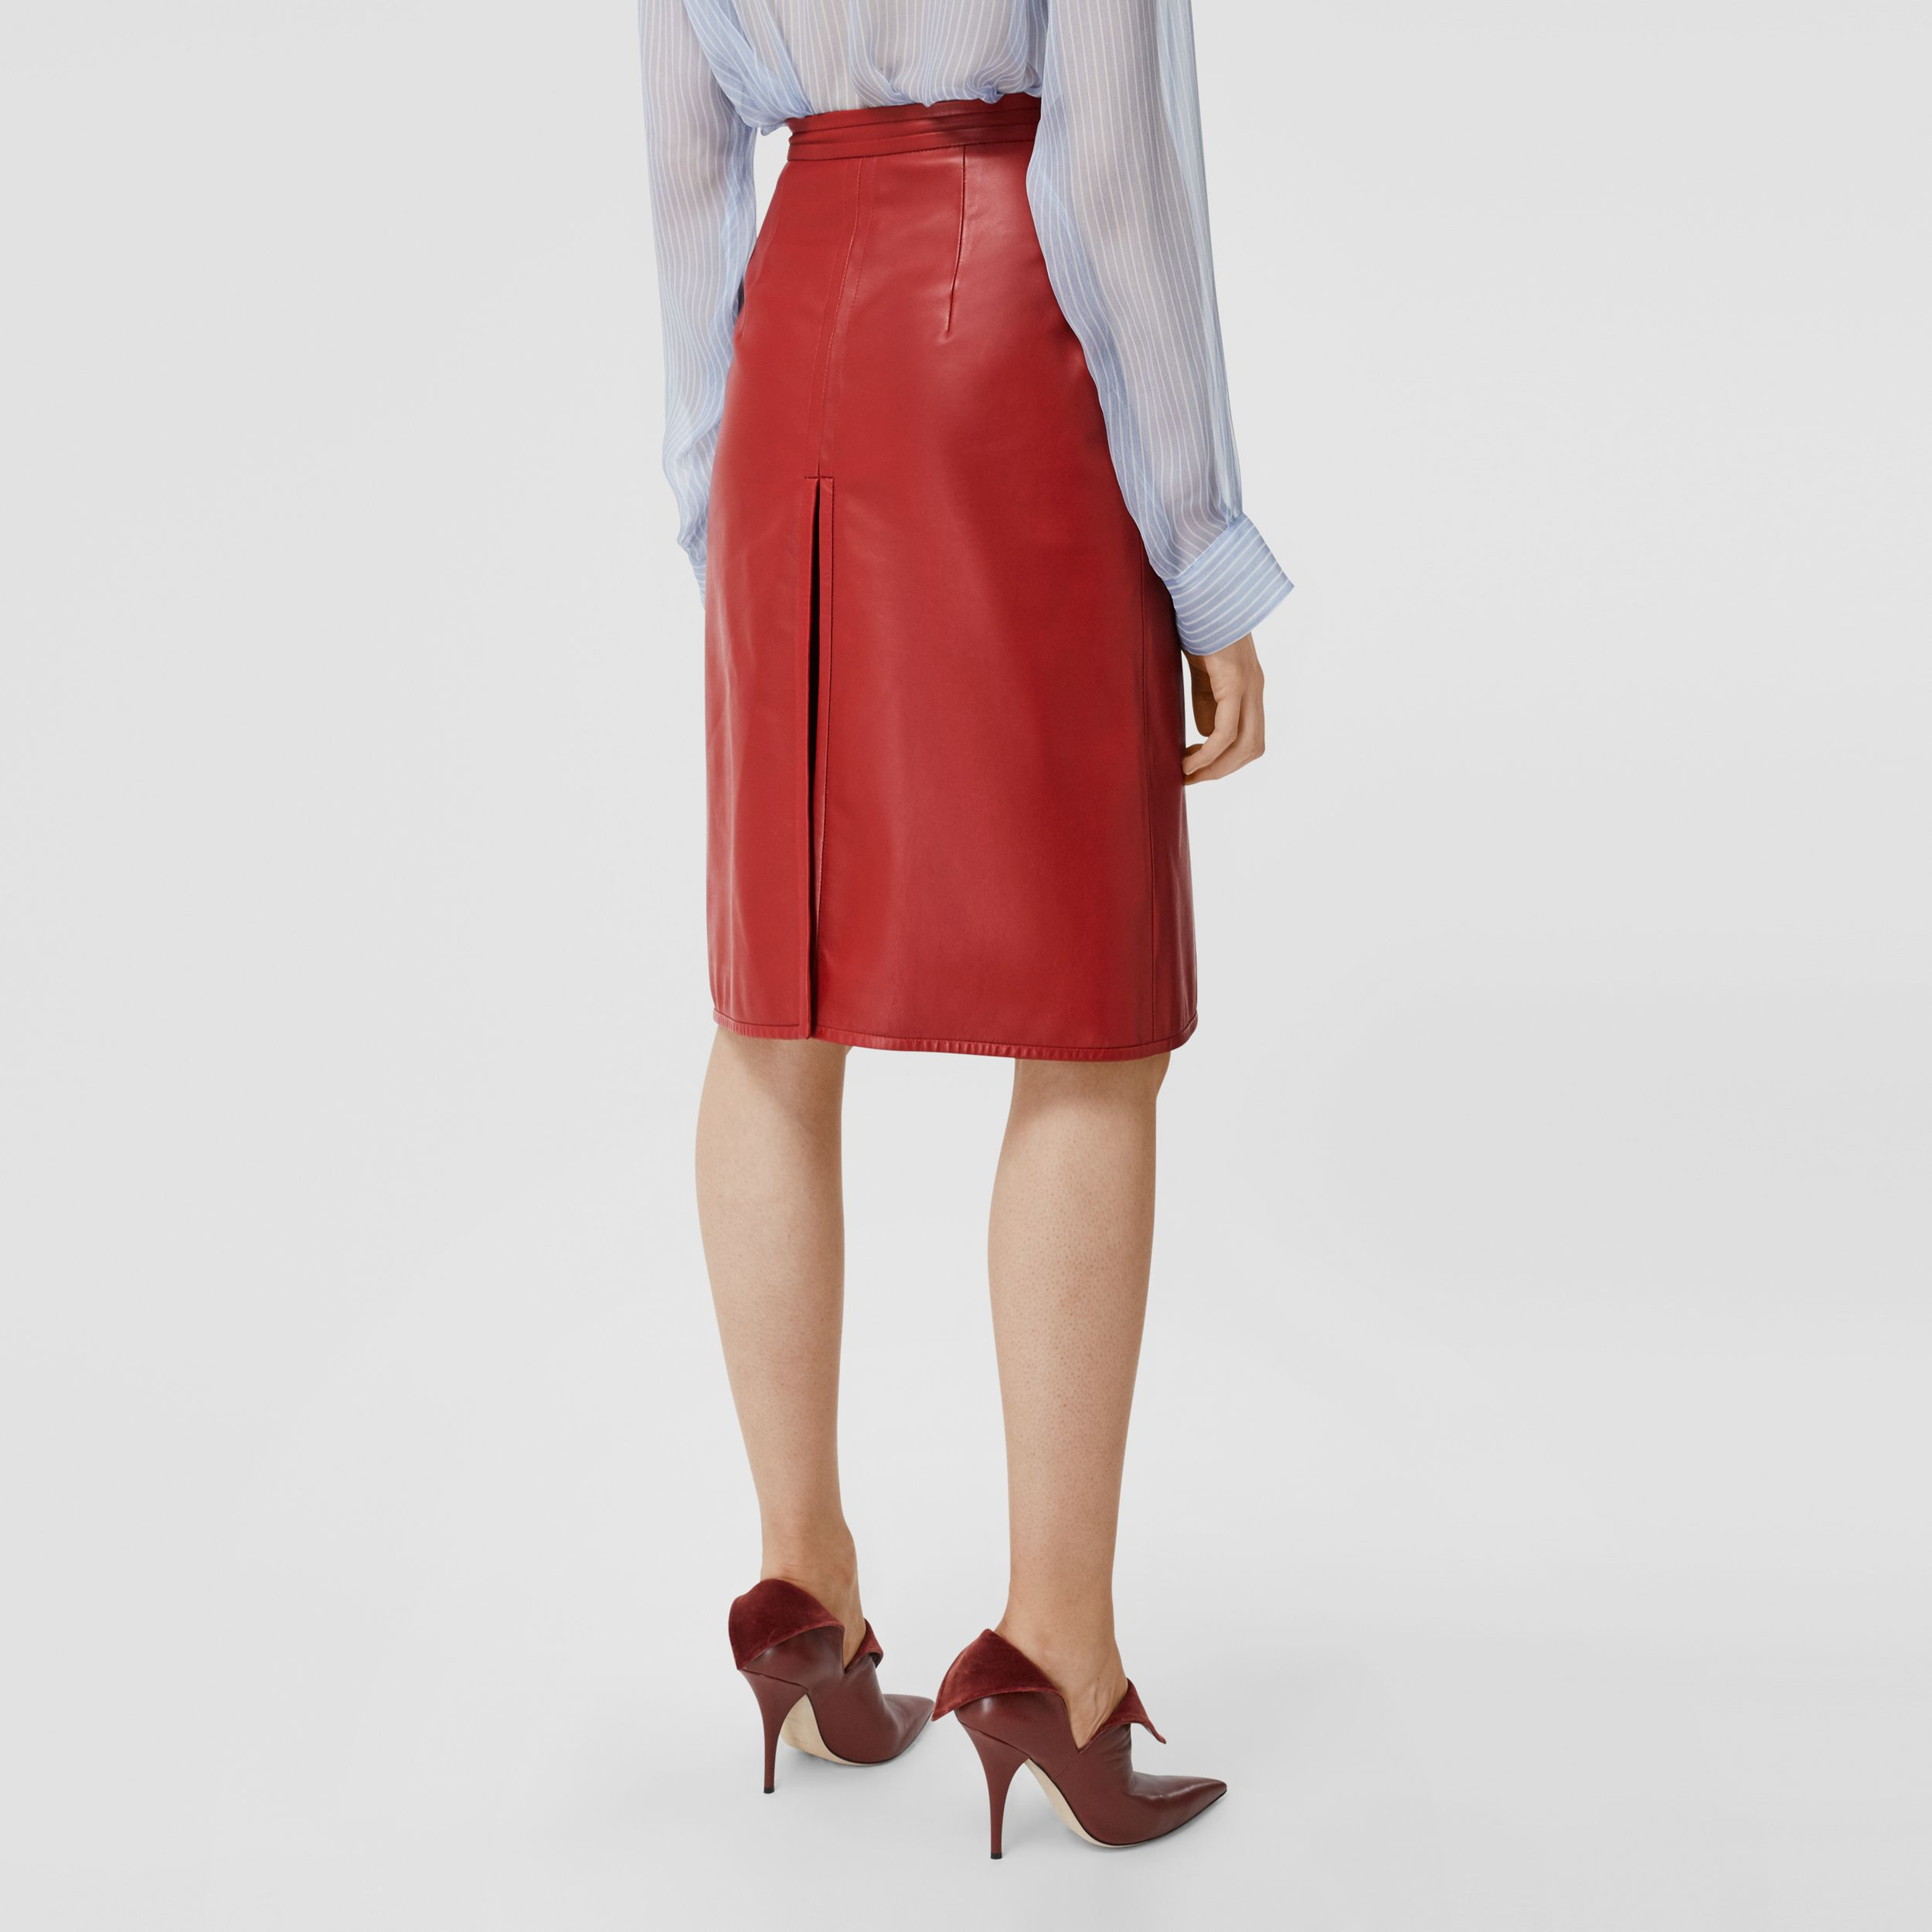 Box-pleat Detail Leather A-line Skirt in Dark Carmine - Women | Burberry - 3